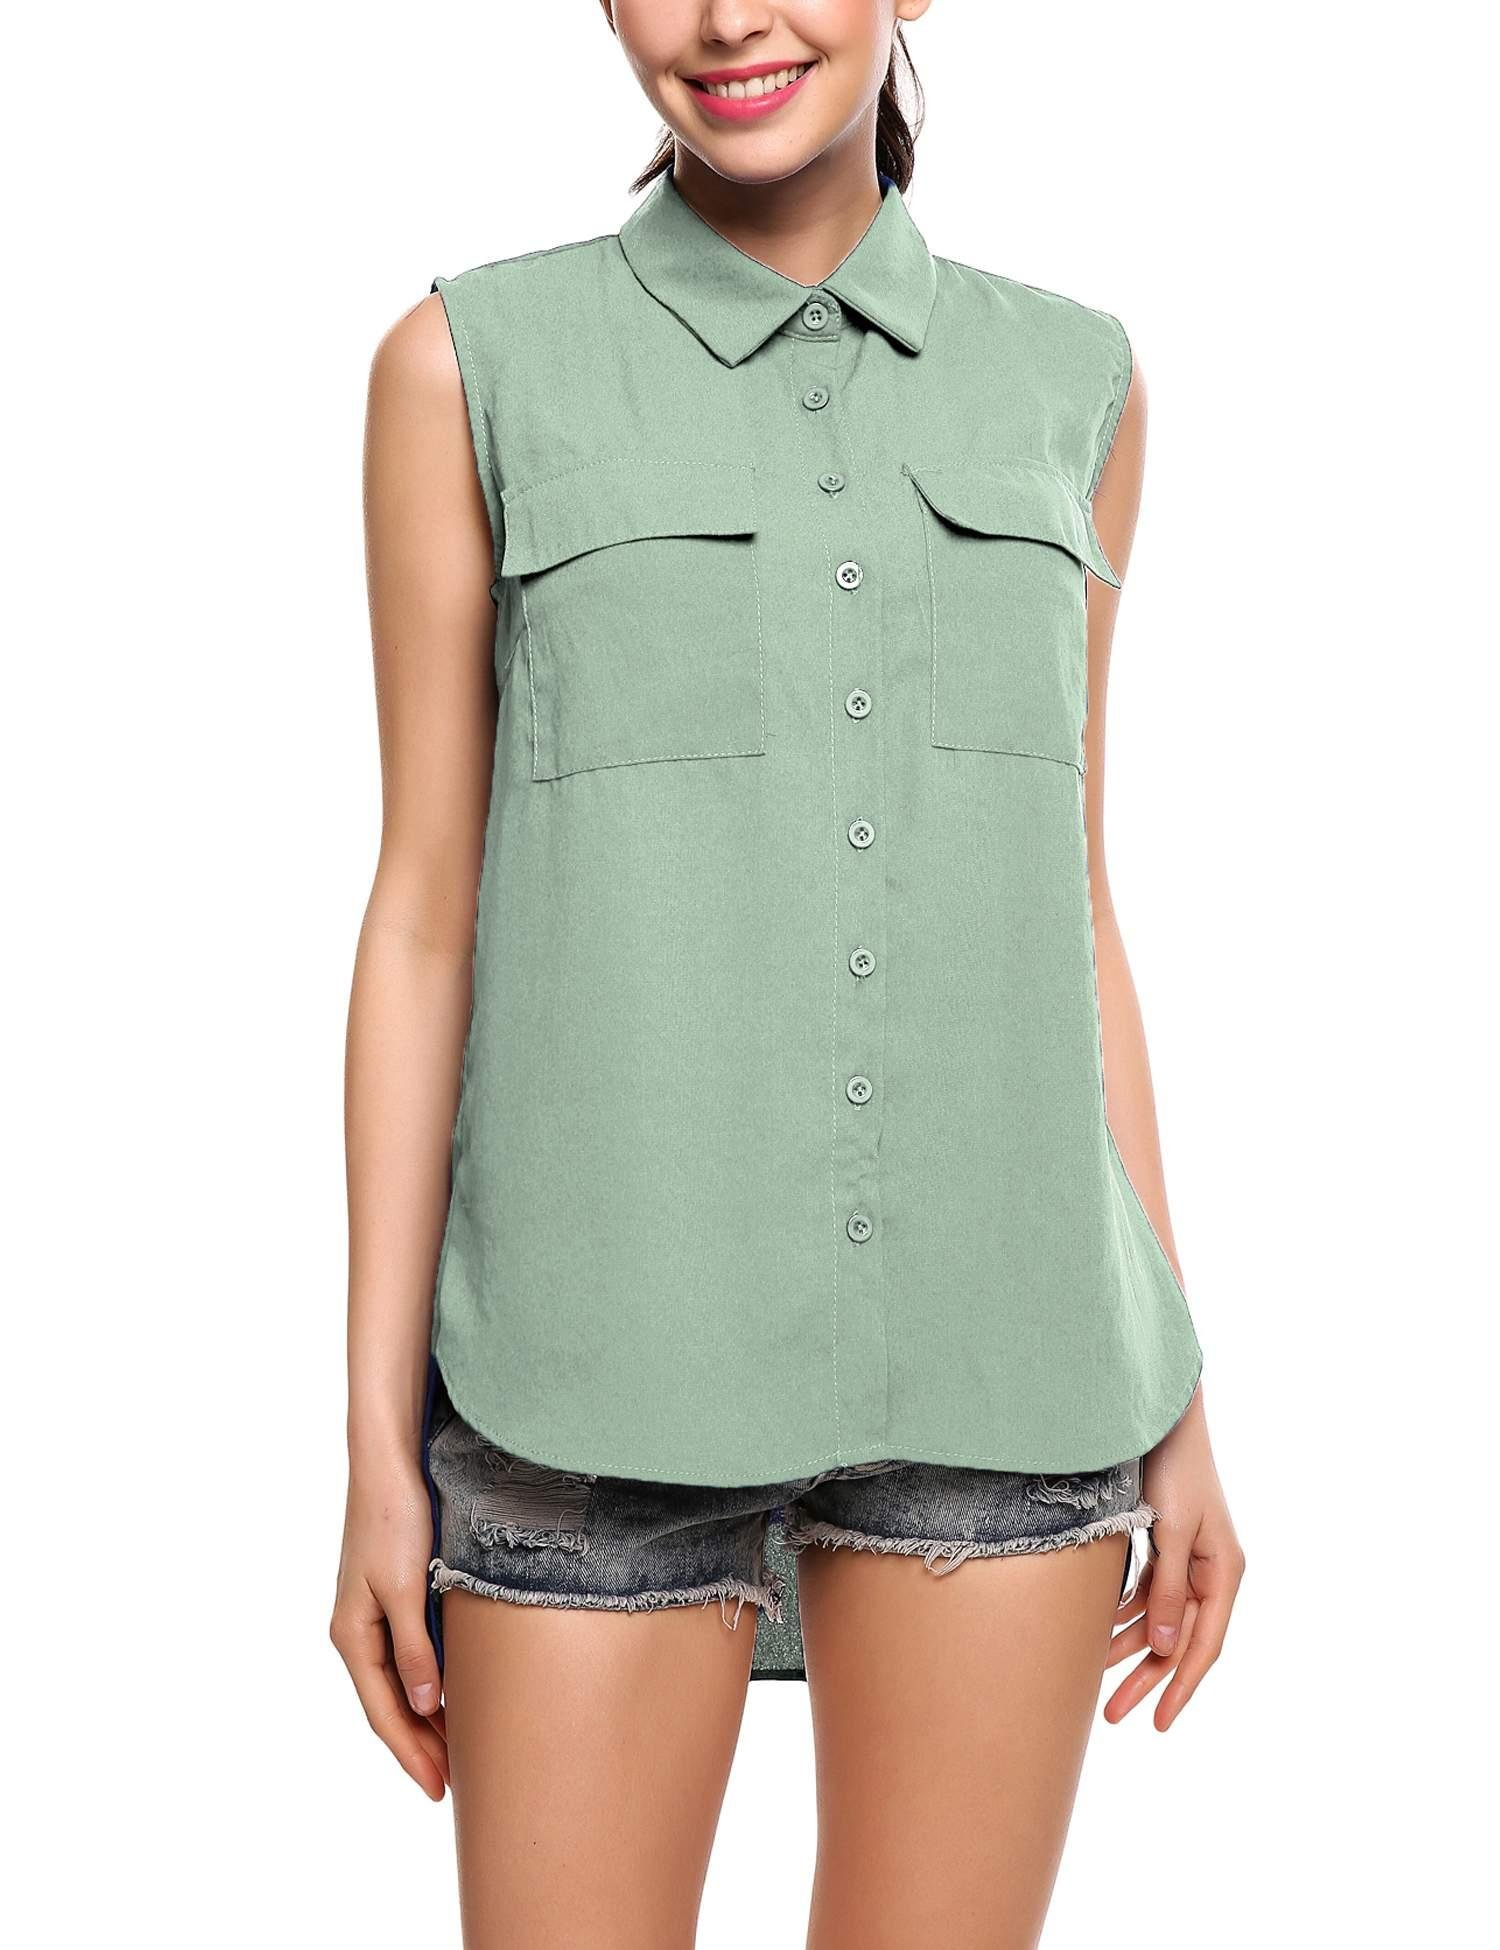 Jingjing1 Women's Summer V Neck Sleeveless Blouse Loose Pleated Chiffon Tank Tops (Small, Style 2- Green)